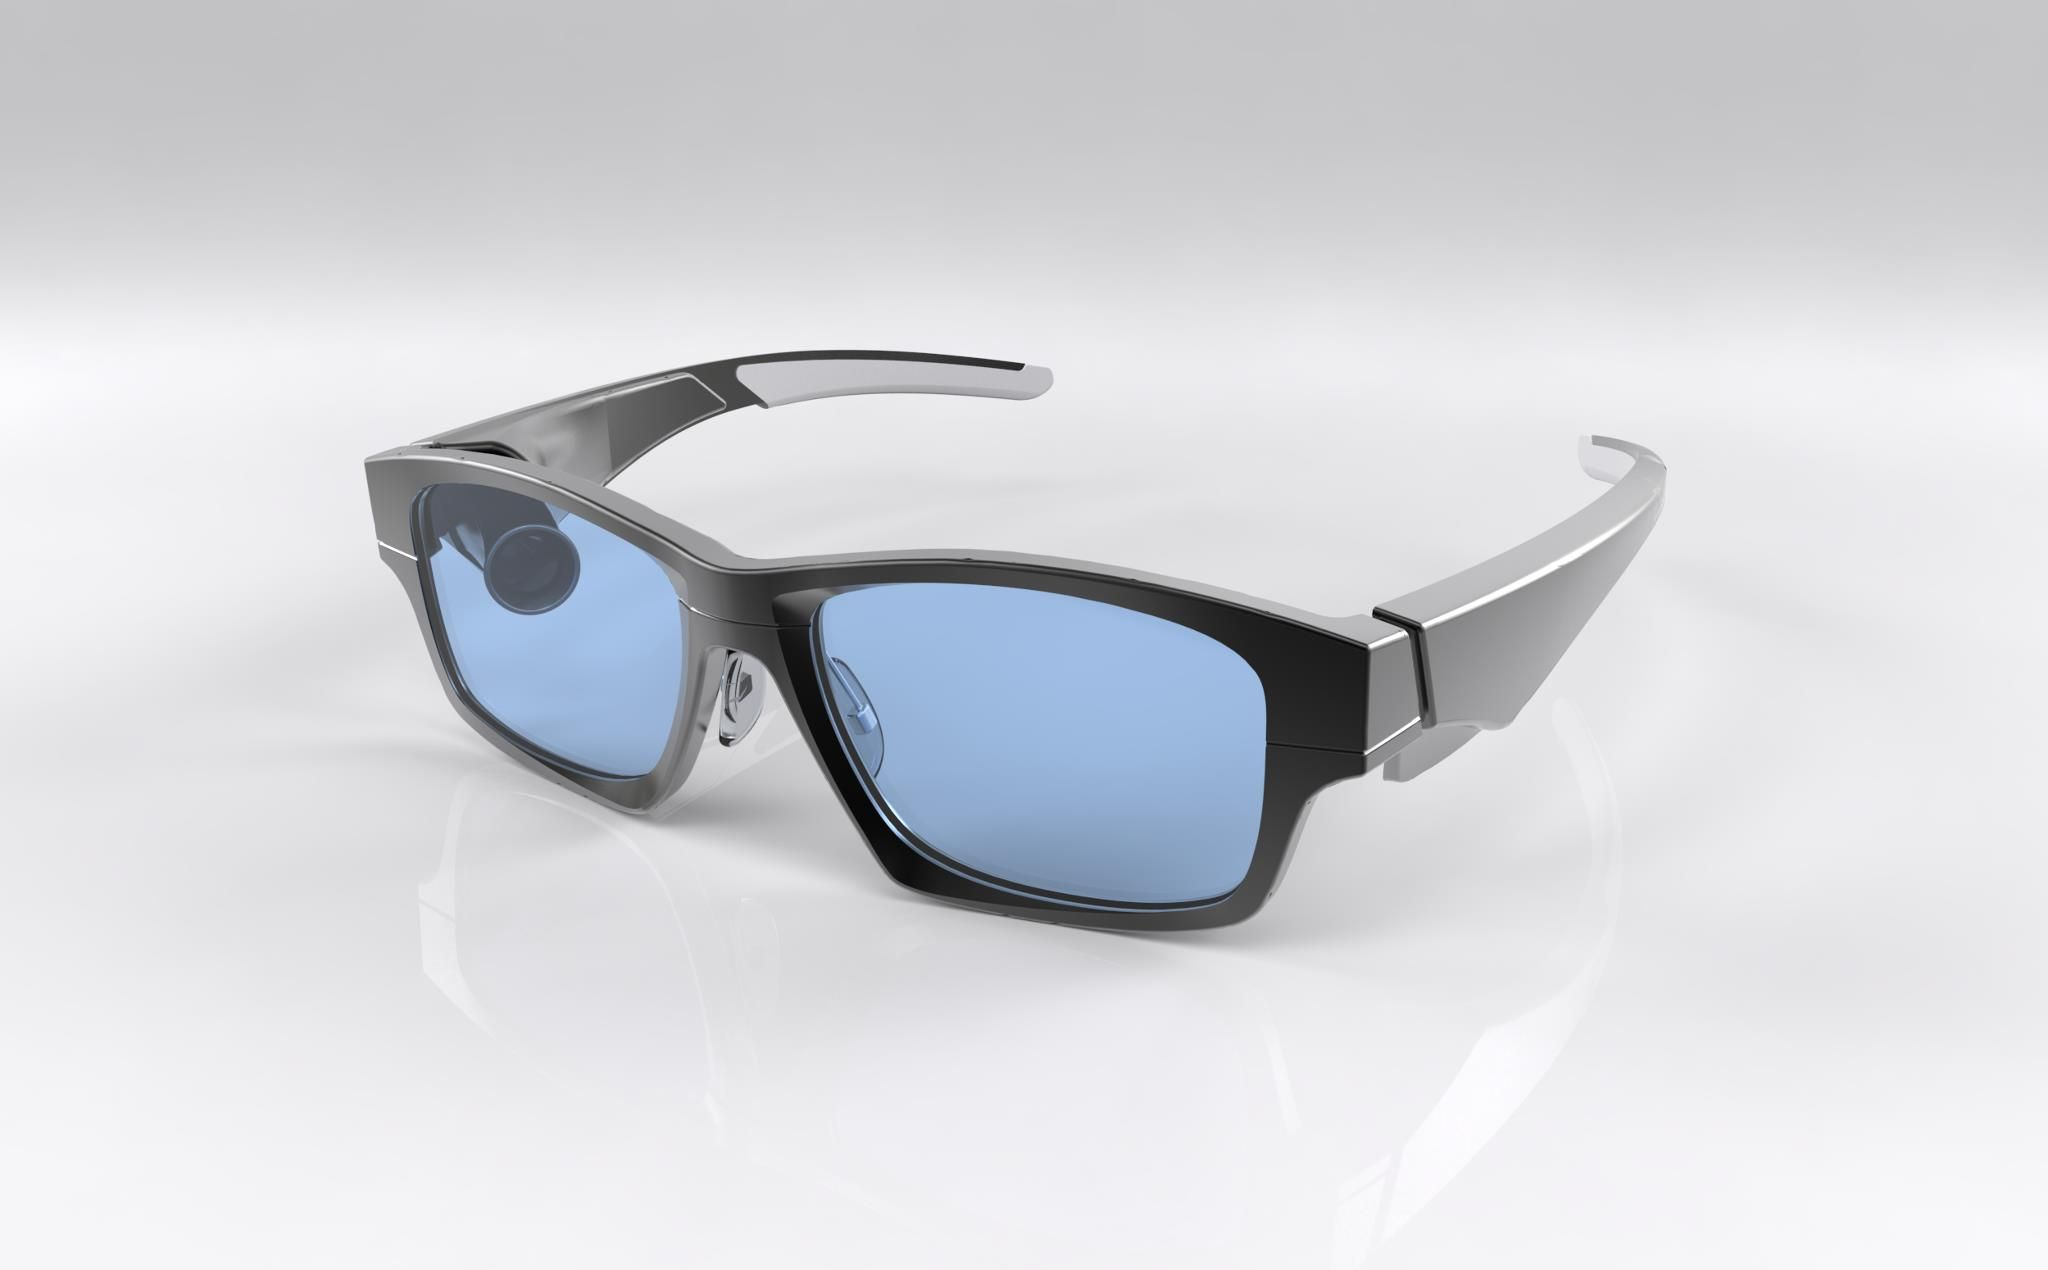 ff6a40e58779 GlassUp eyeglasses allow you to read text messages and e-mail directly from  your lenses. And tweets